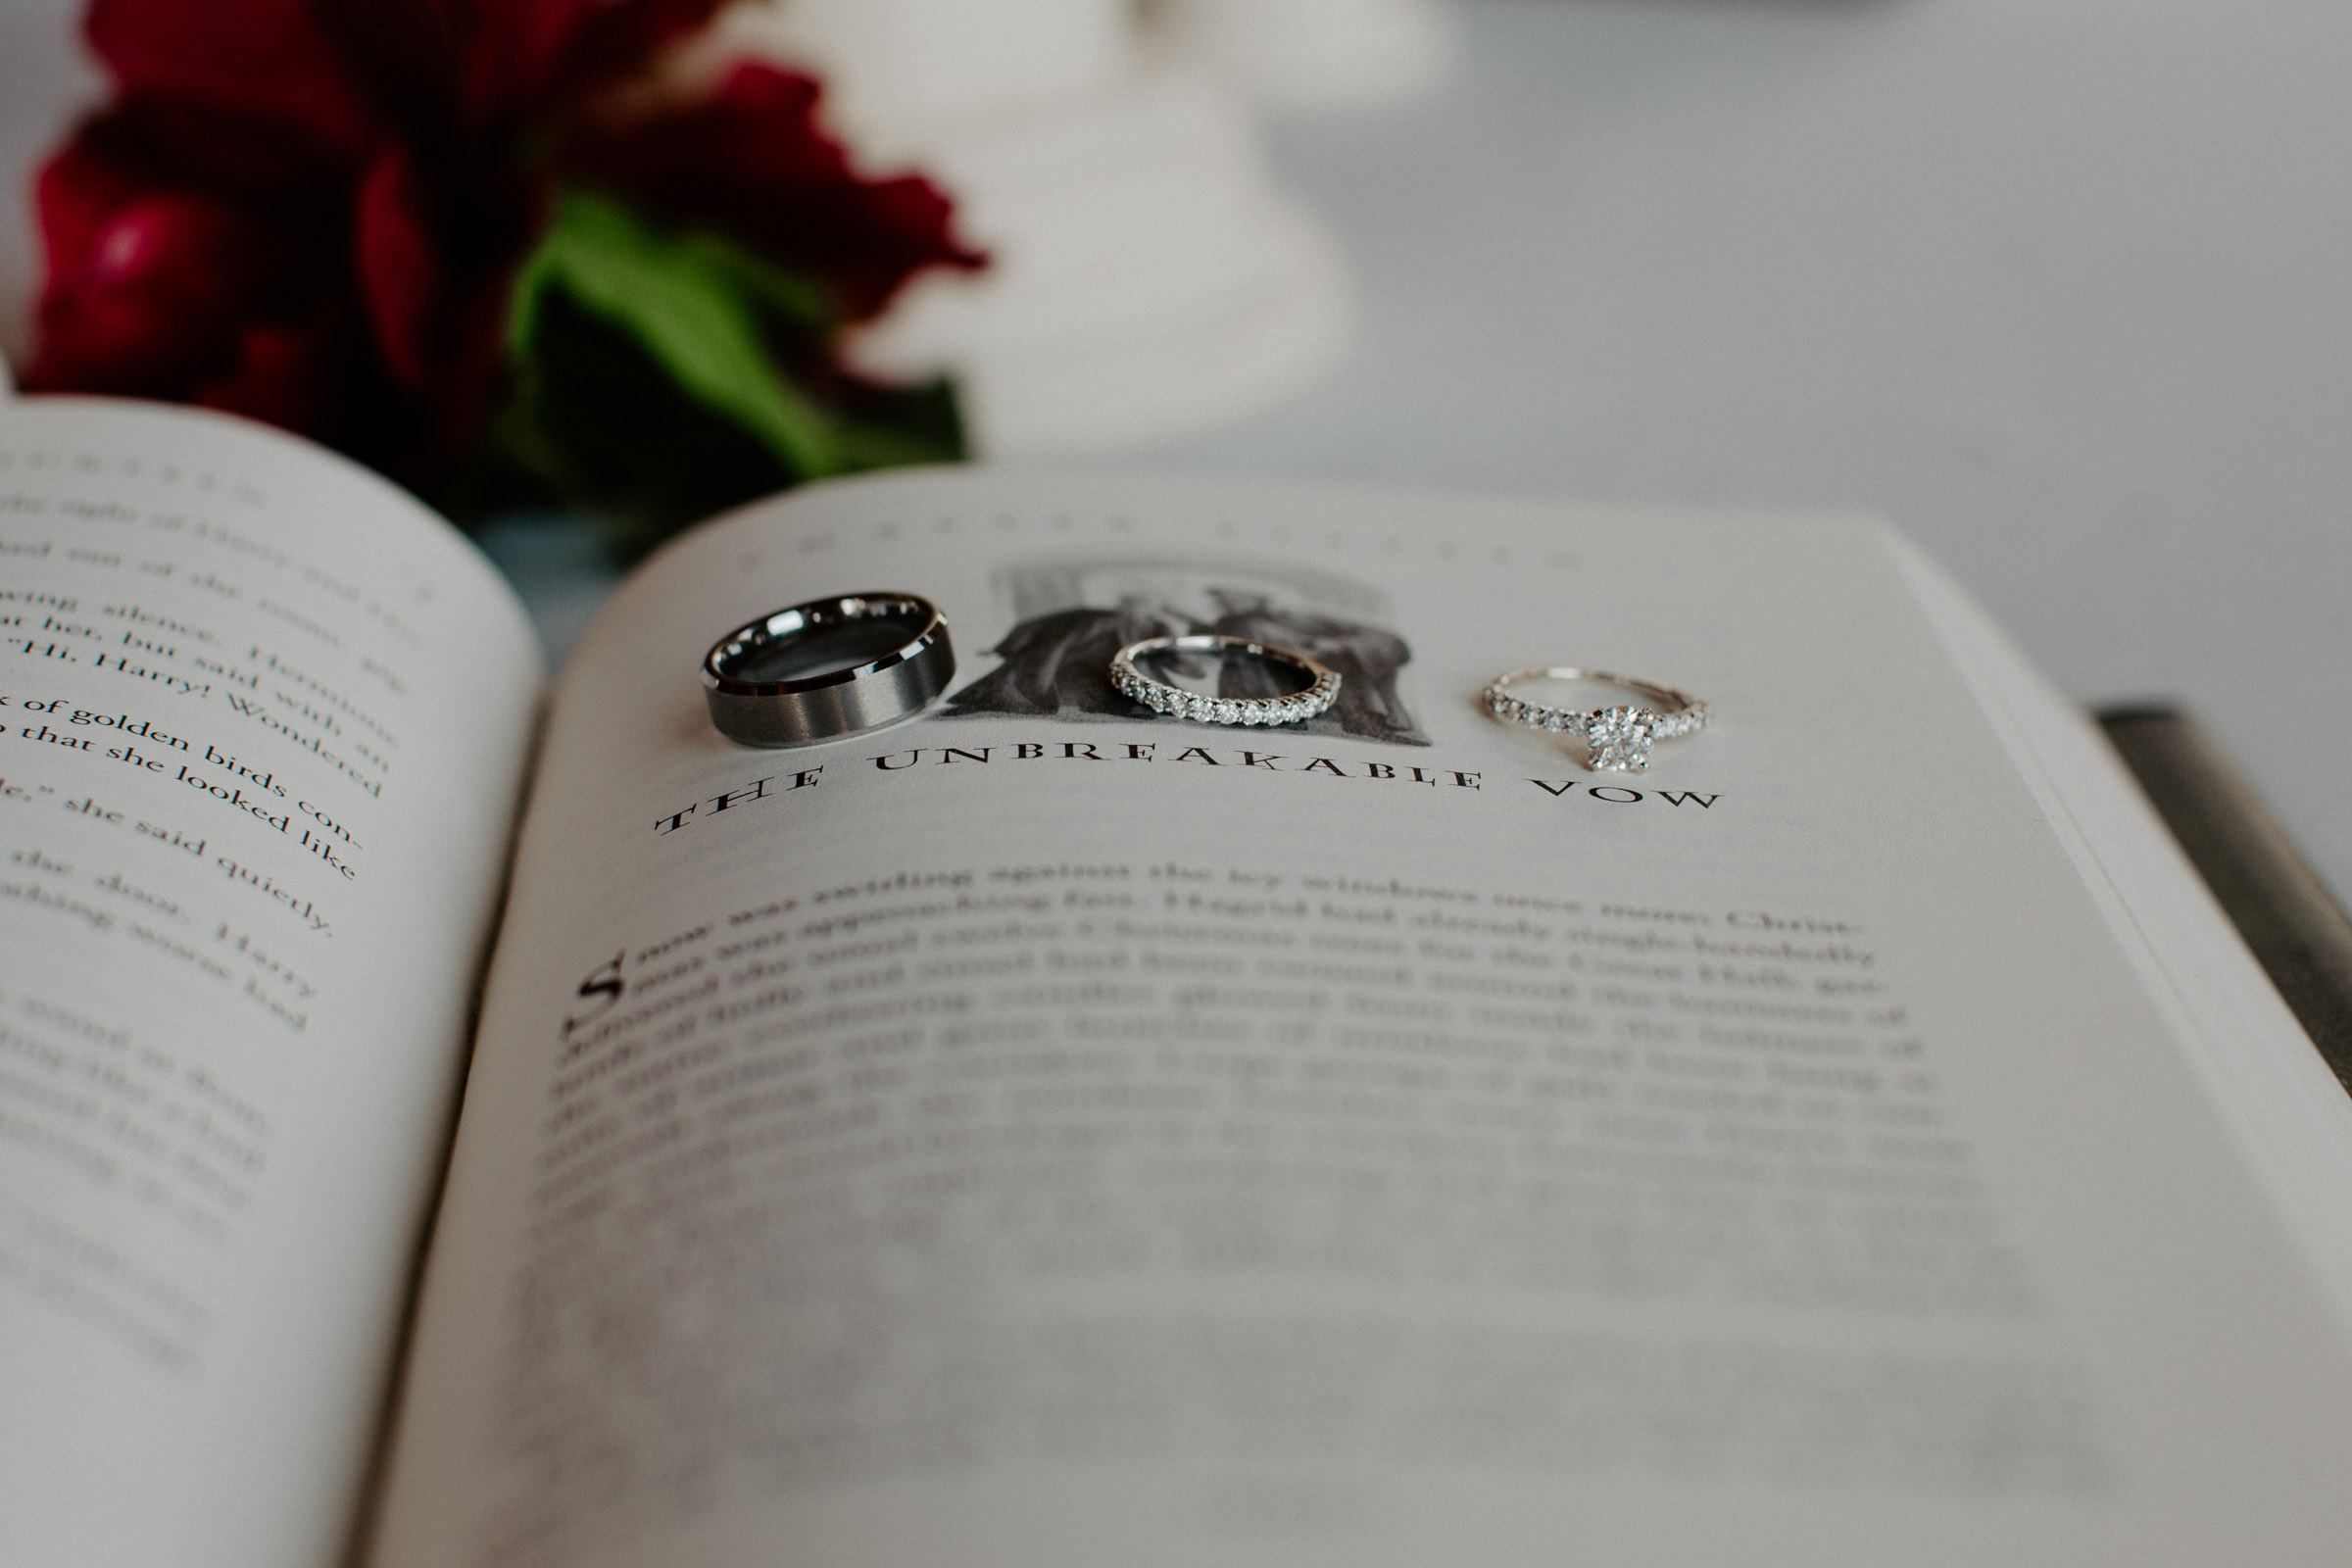 harry potter unbreakable vow with wedding rings on wedding day in DFW